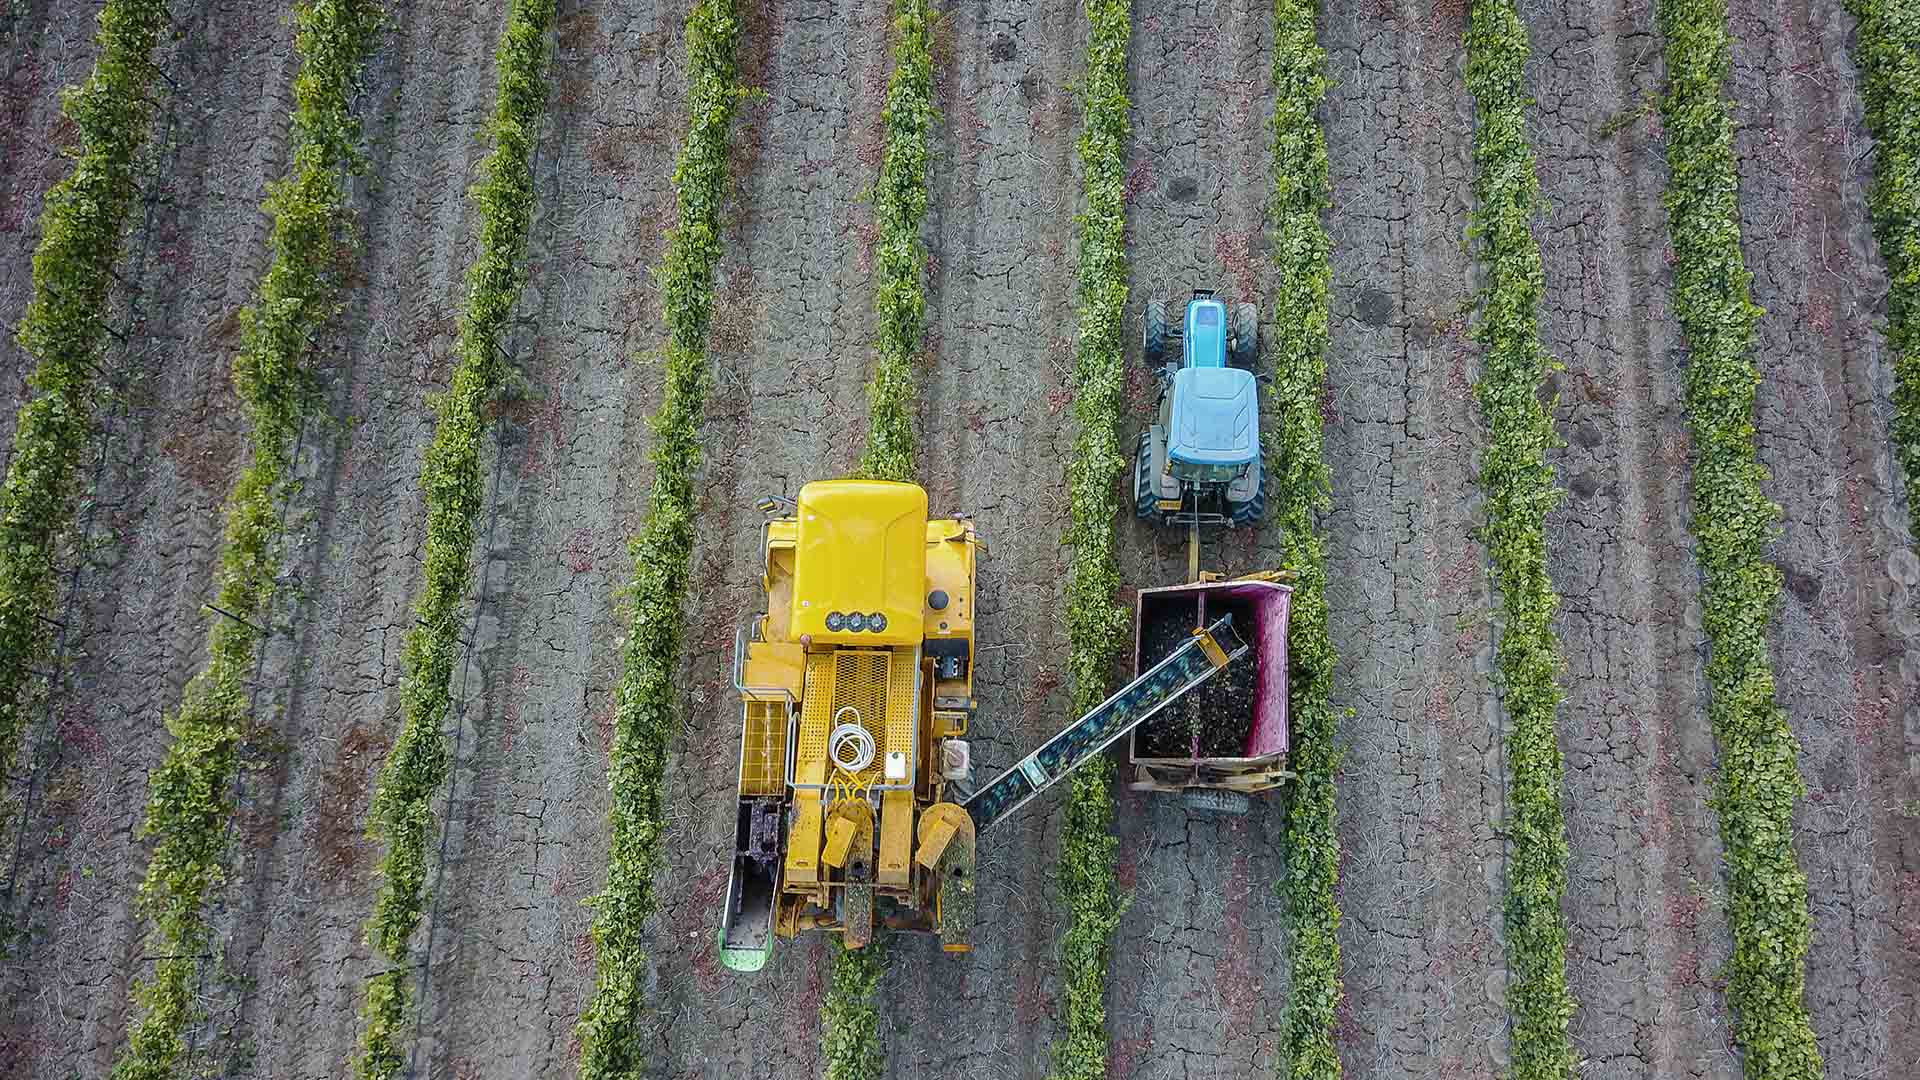 Israeli wines - image of vineyard from above